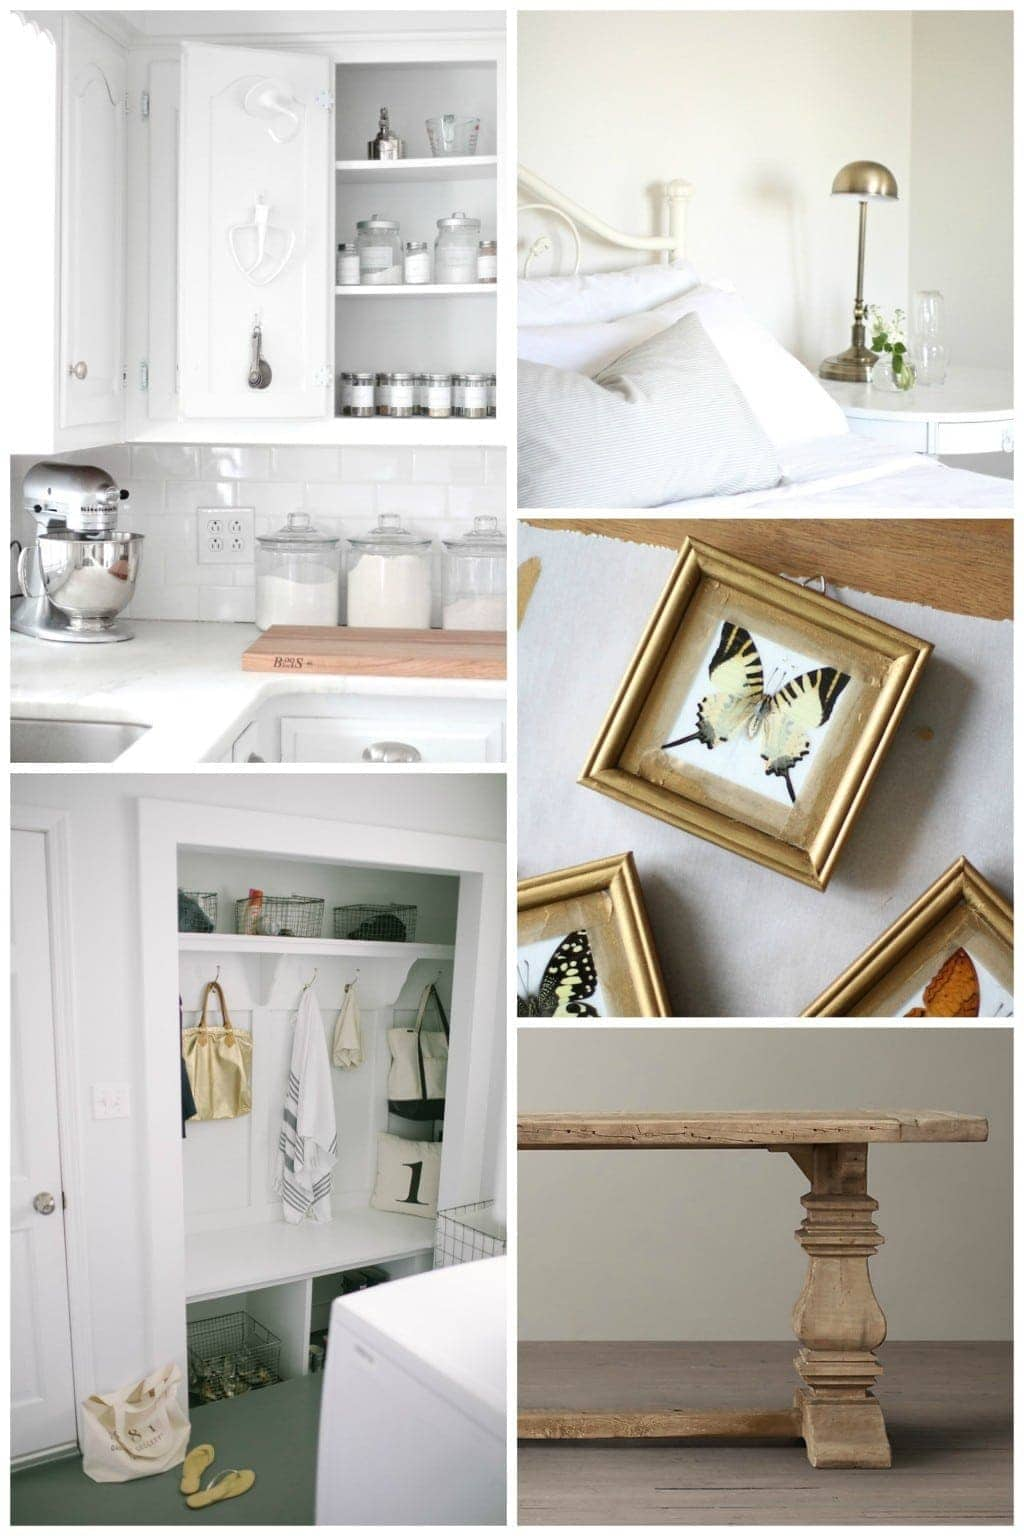 Home advice & beautiful diy projects